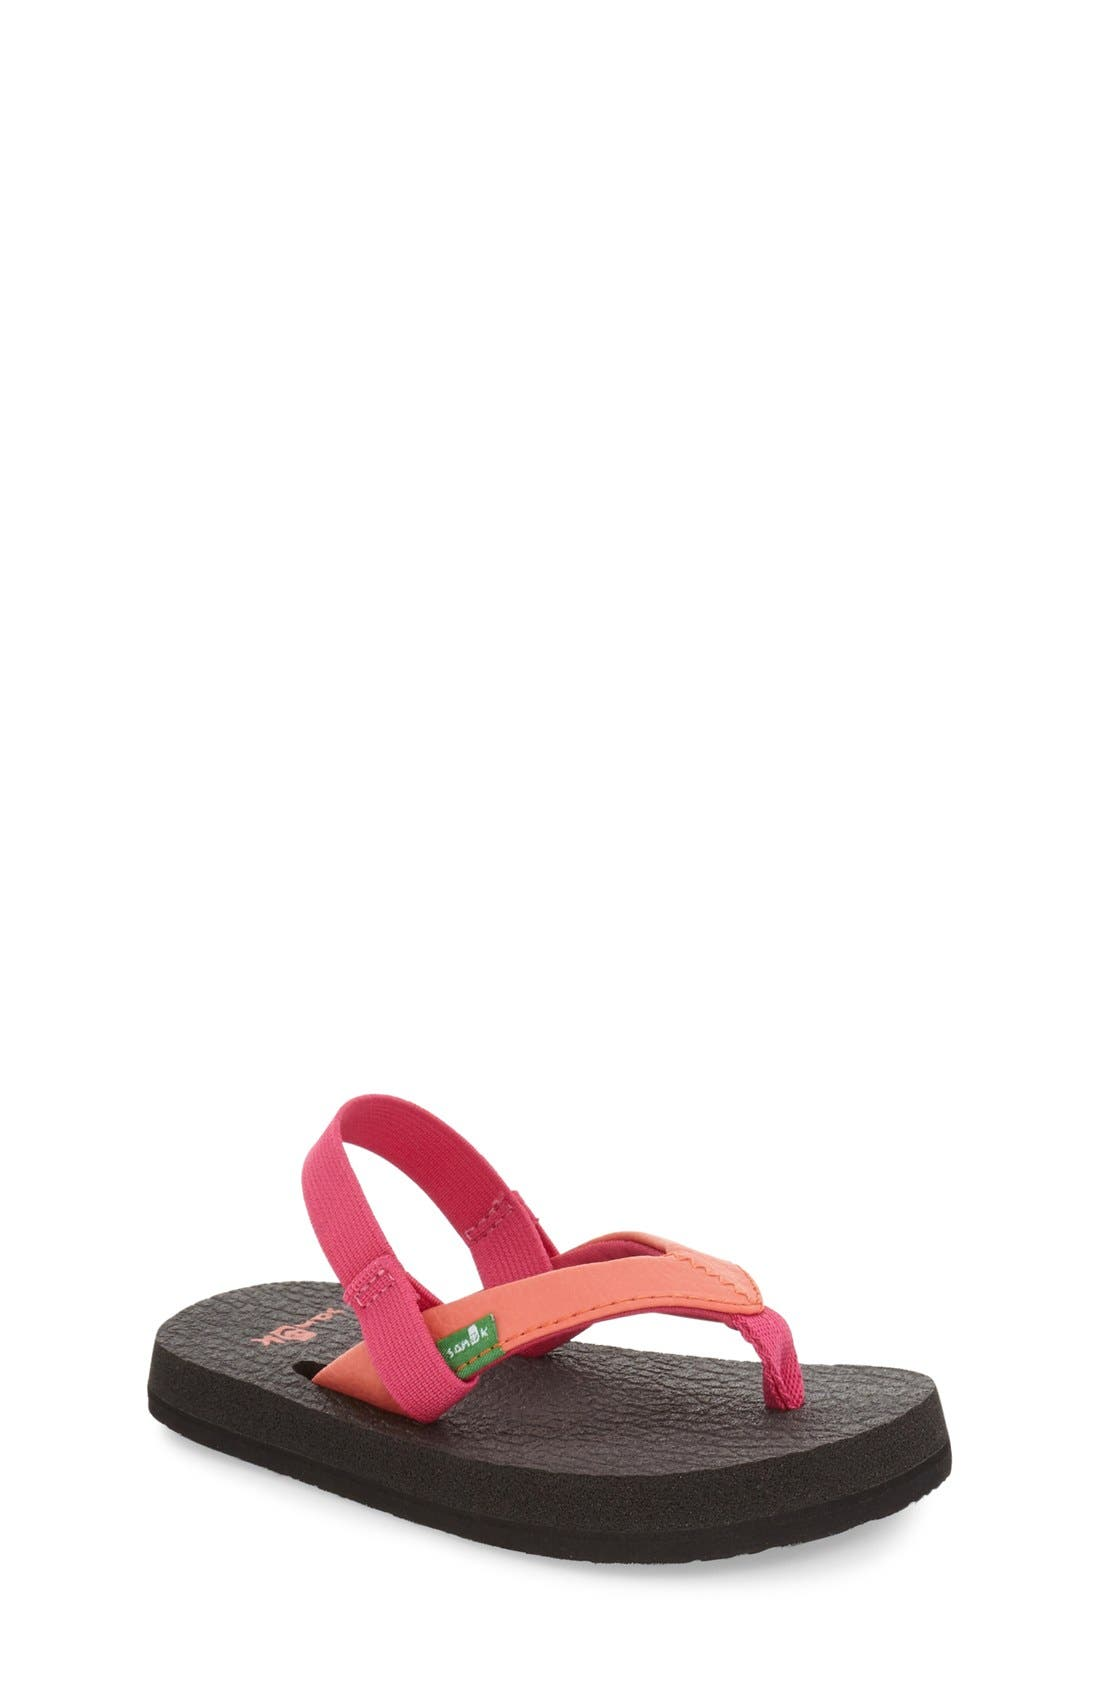 'Yoga Mat' Sandal,                             Main thumbnail 1, color,                             833